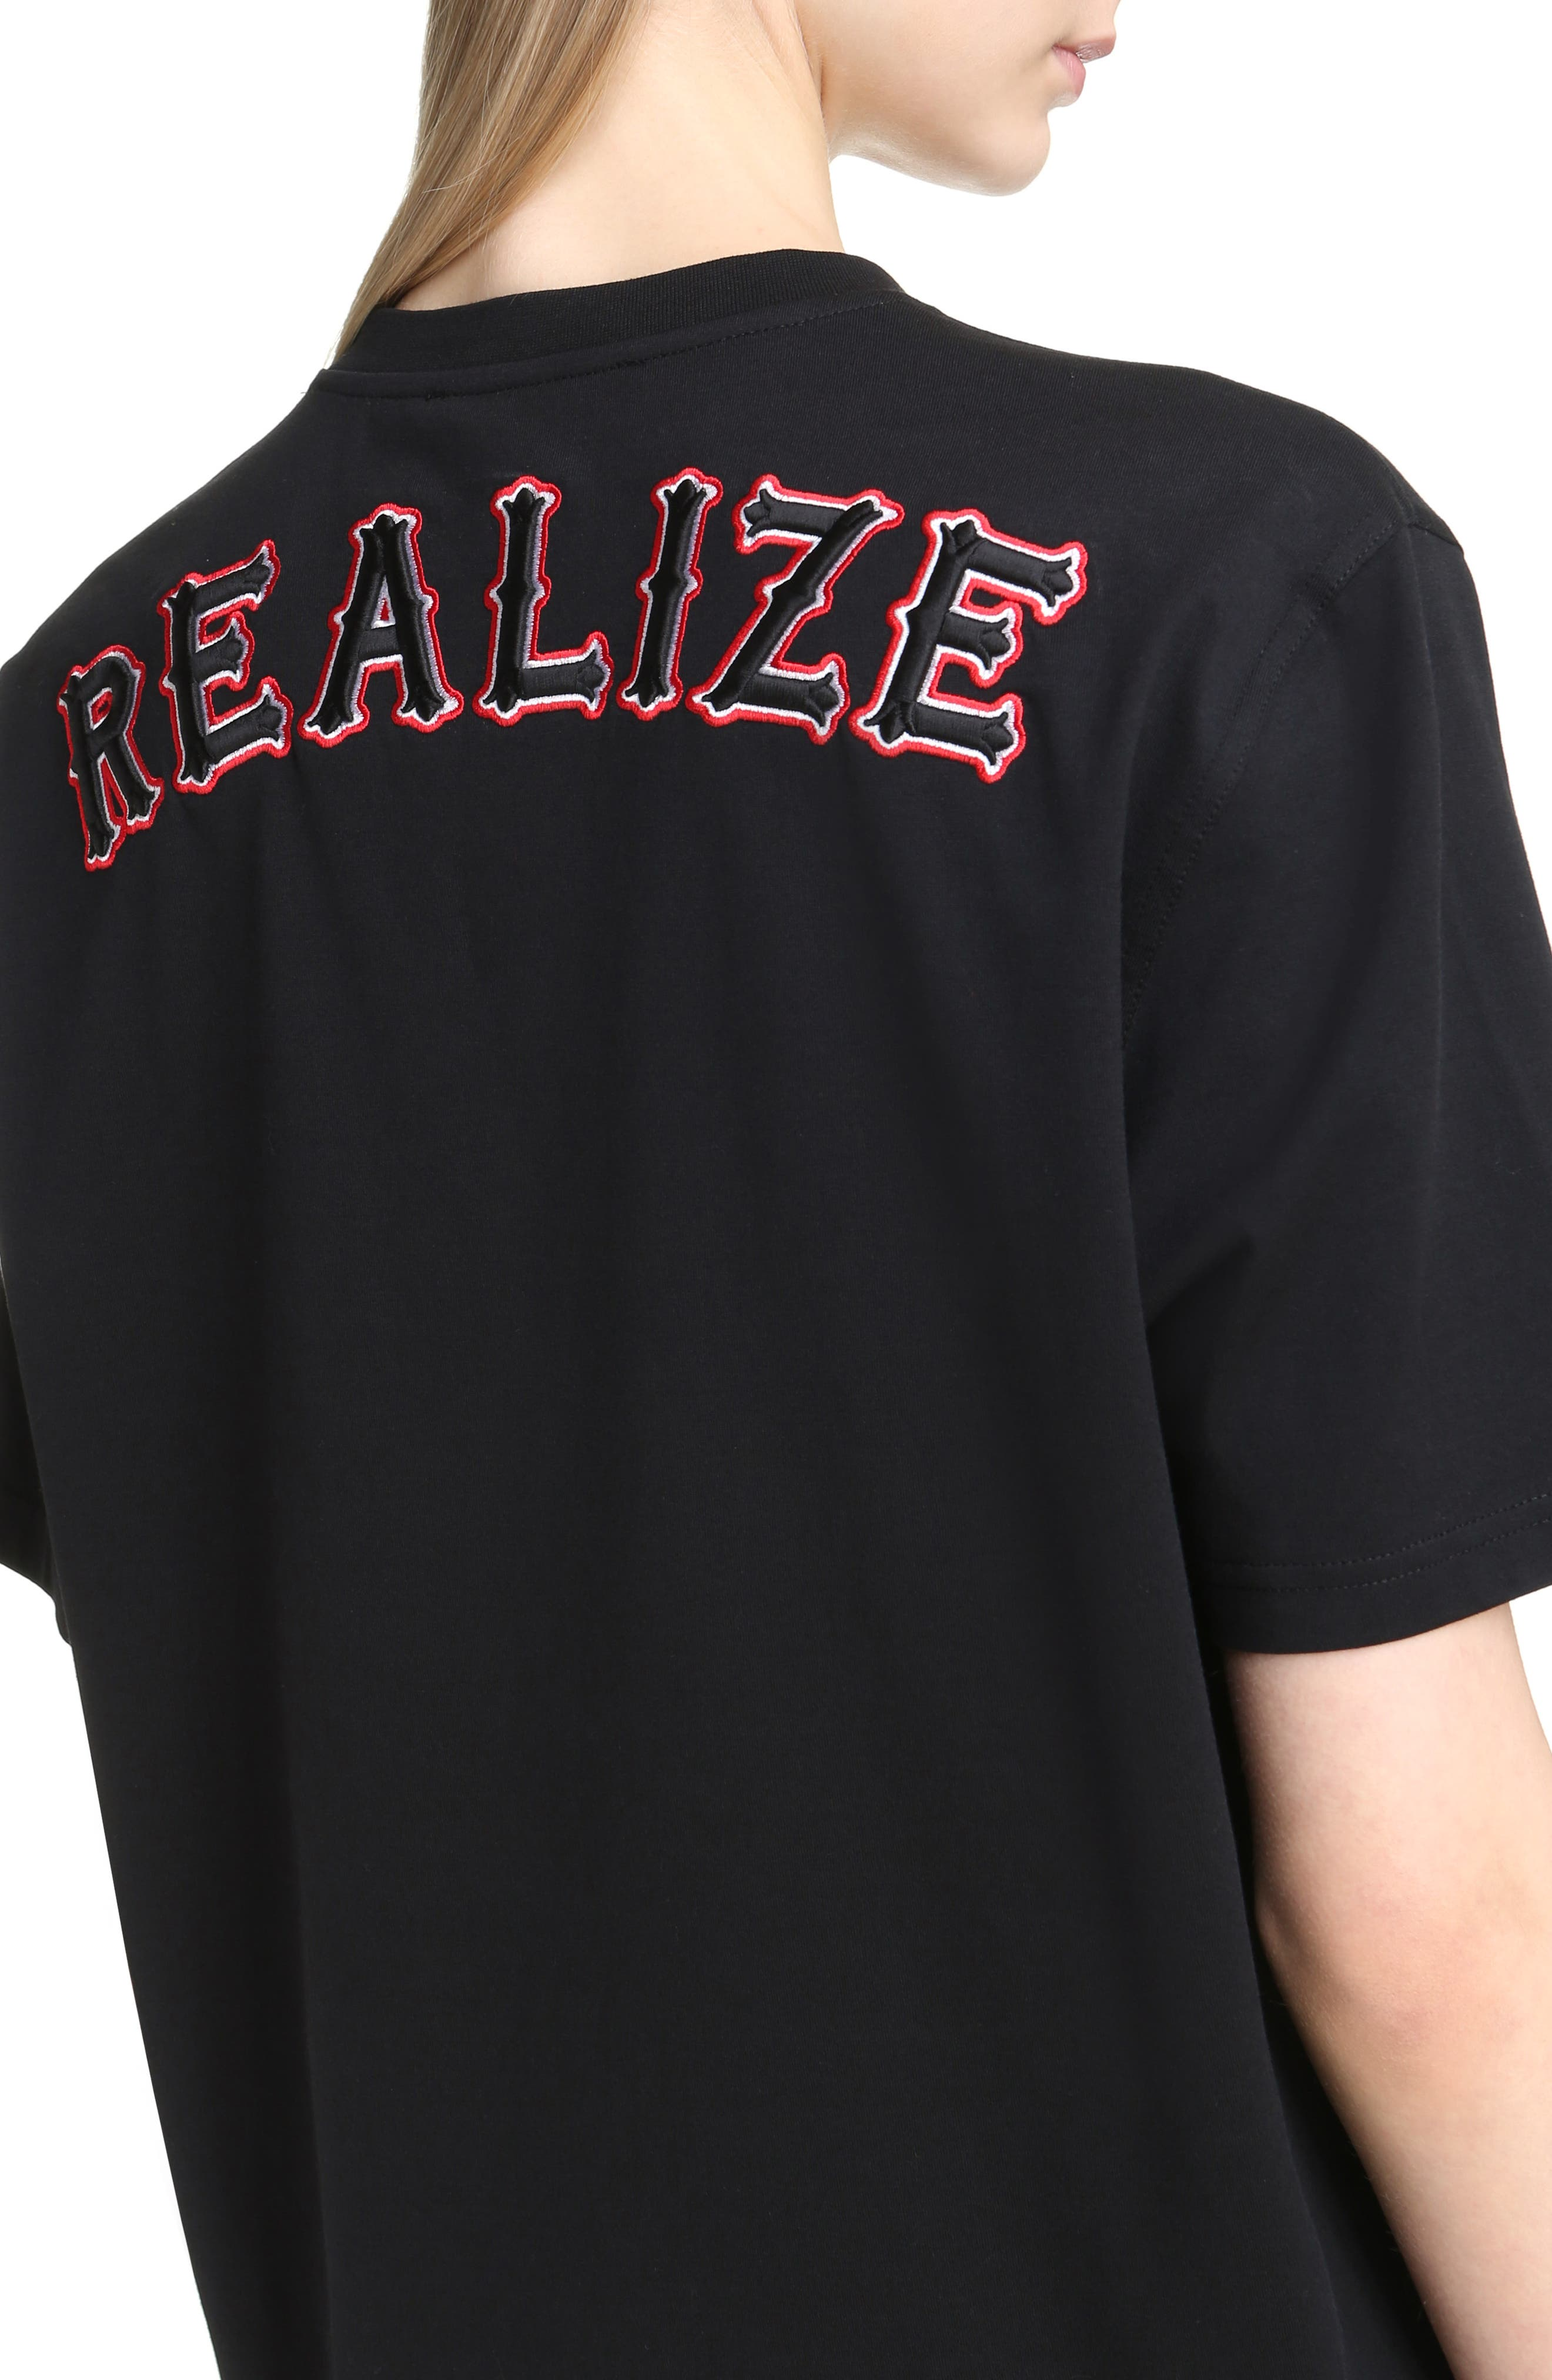 Realize Embroidered Tee,                             Alternate thumbnail 4, color,                             001